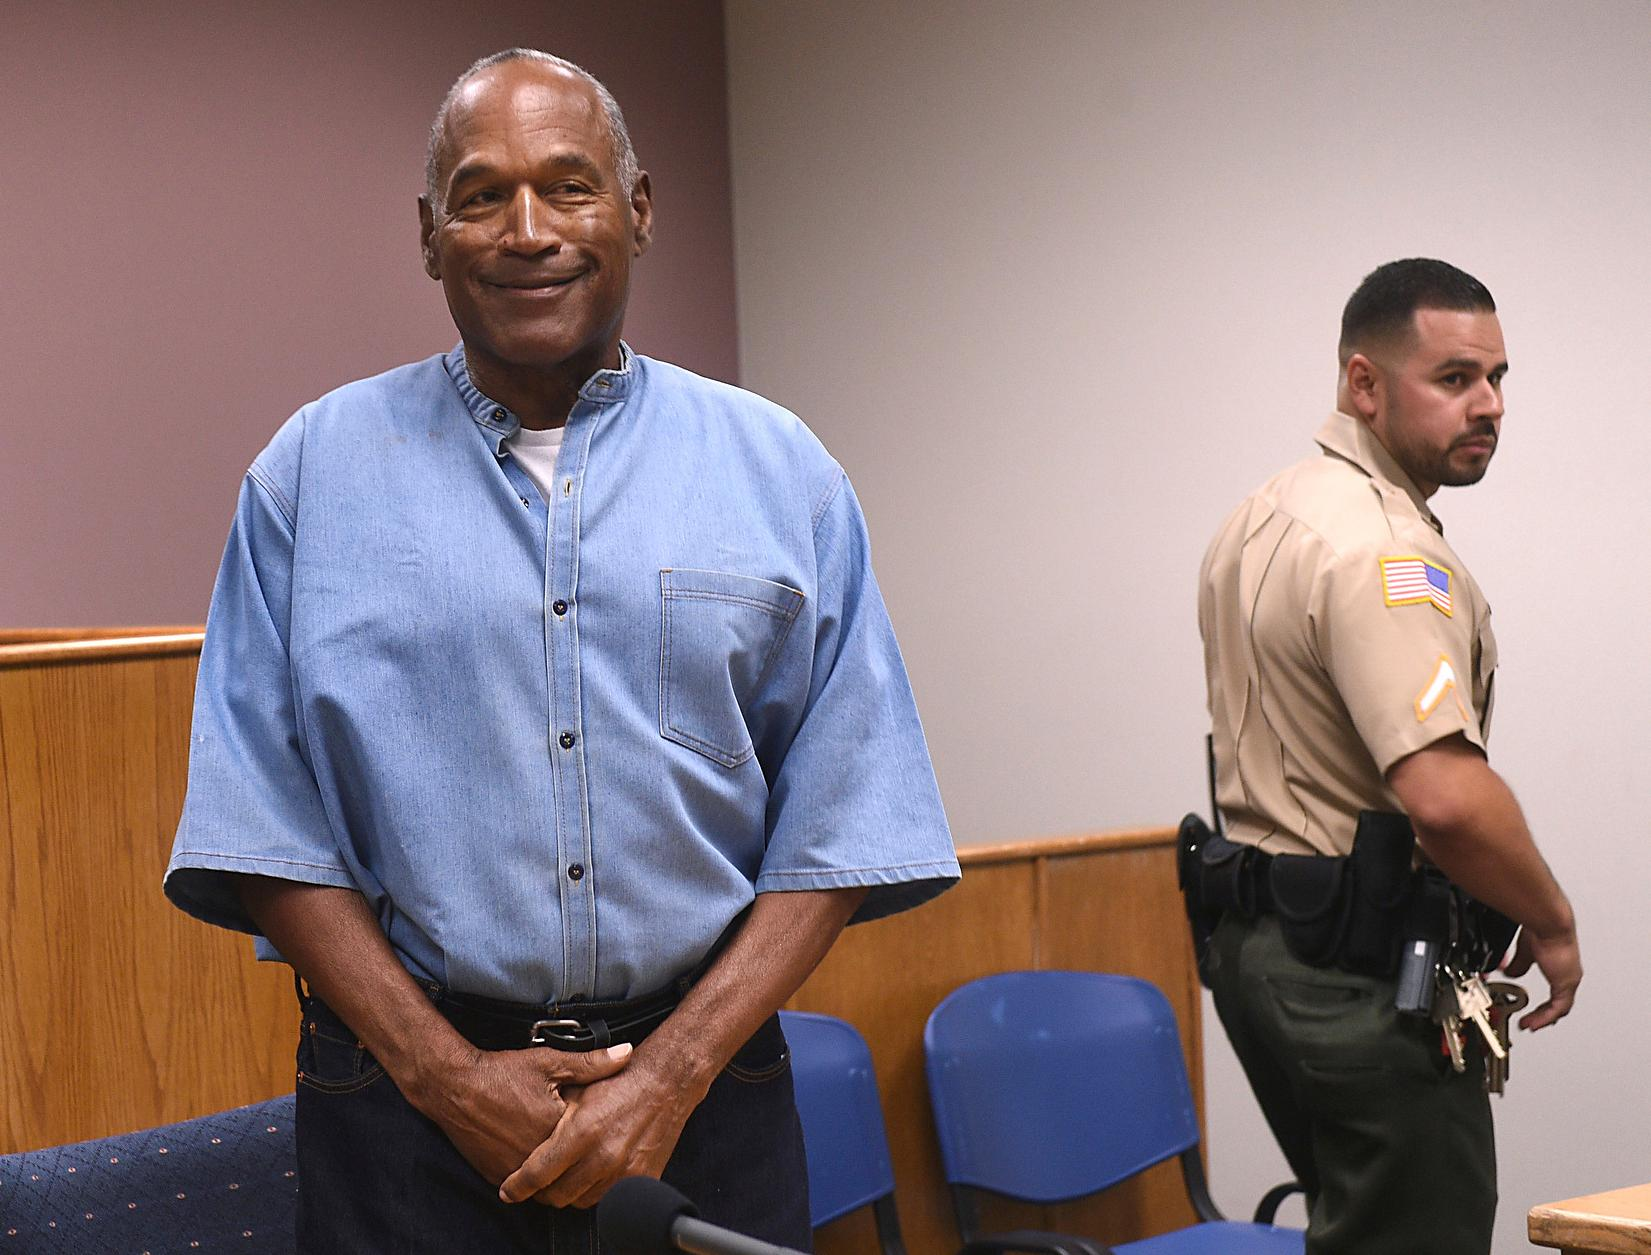 FILE - In this July 20, 2017, file photo, former NFL football star O.J. Simpson enters for his parole hearing at the Lovelock Correctional Center in Lovelock, Nev. Simpson enjoys living in Las Vegas, and isn't planning to move to Florida like he told state parole officials before he was released in October from Nevada state prison. (Jason Bean/The Reno Gazette-Journal via AP, Pool, File)